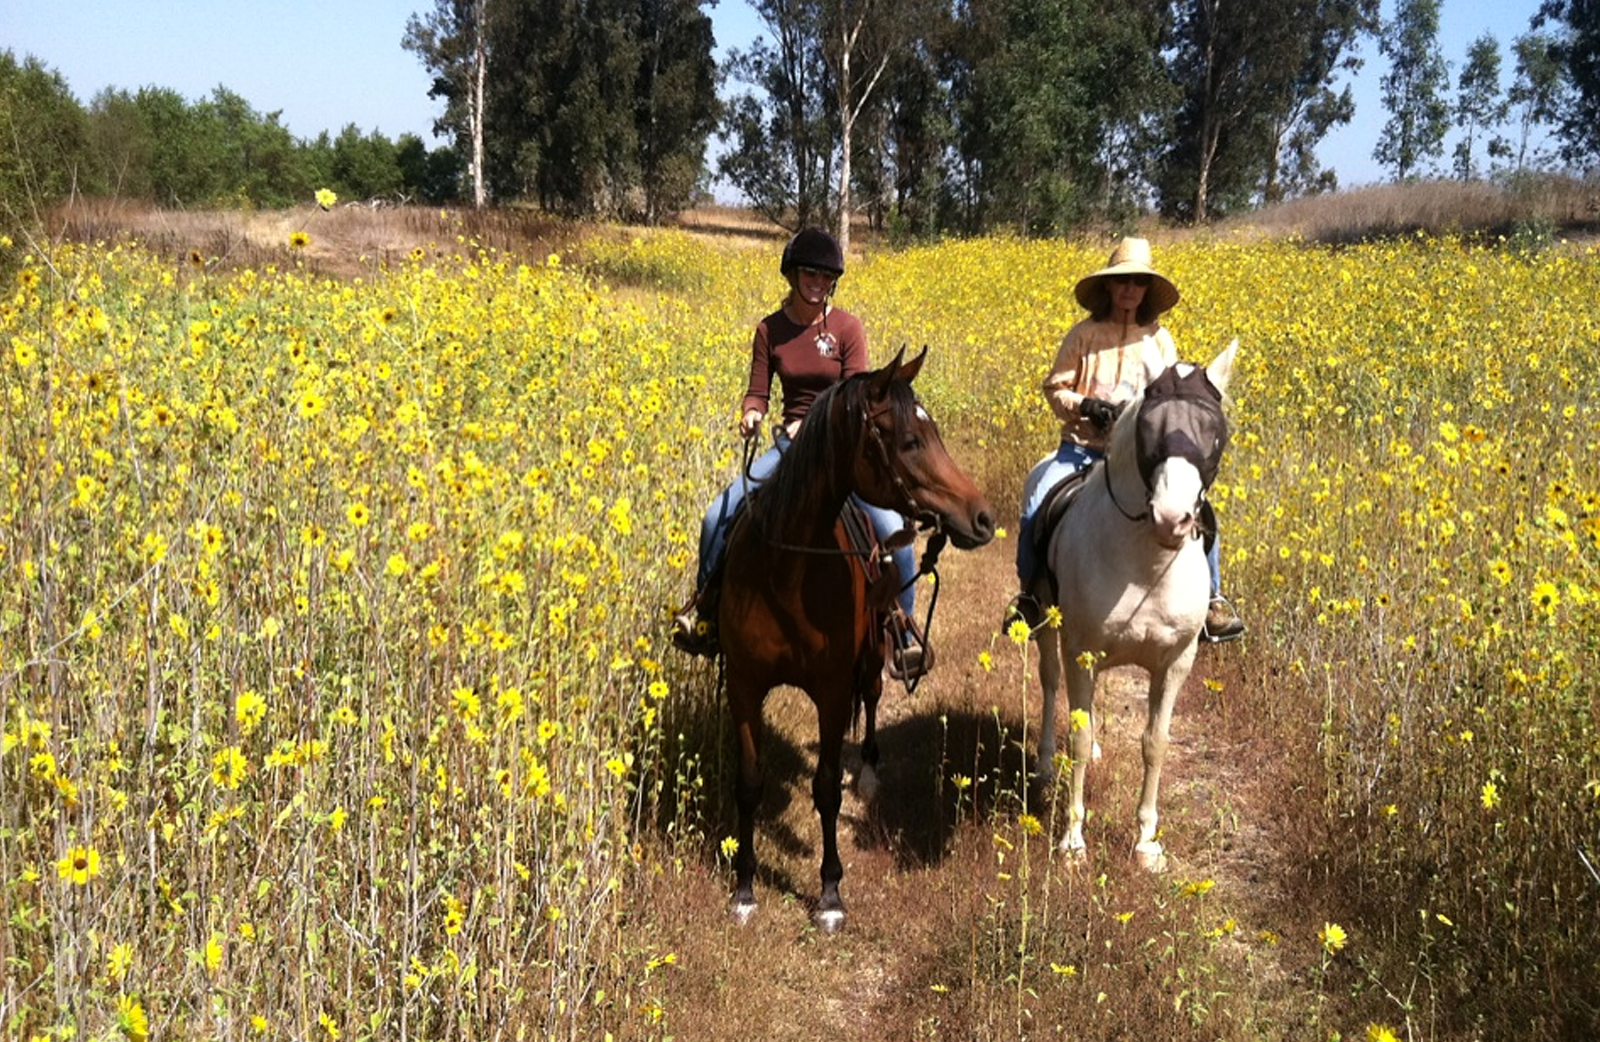 Two women ride on horseback in a field of yellow flowers at Prado park.